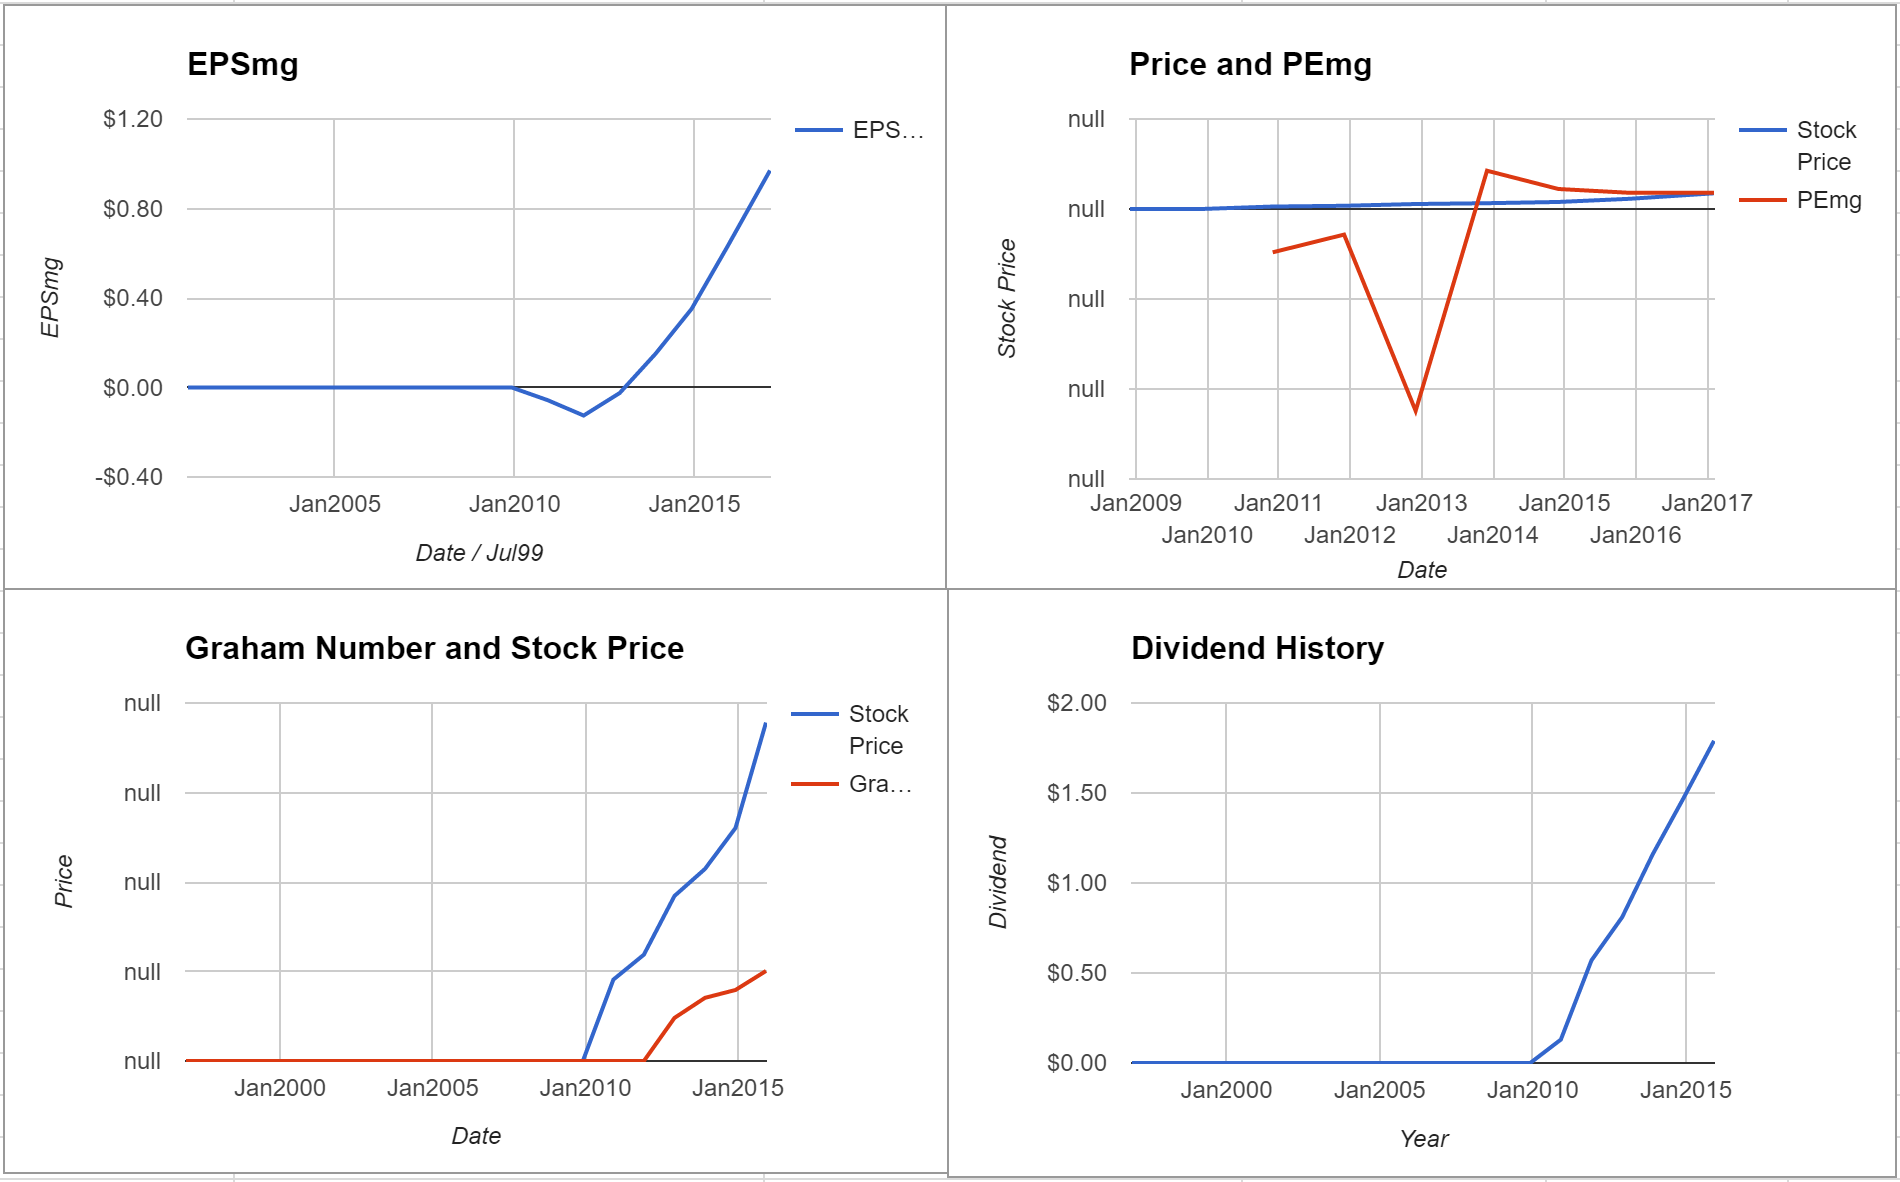 CoreSite Realty Corp Valuation – Initial Coverage $COR